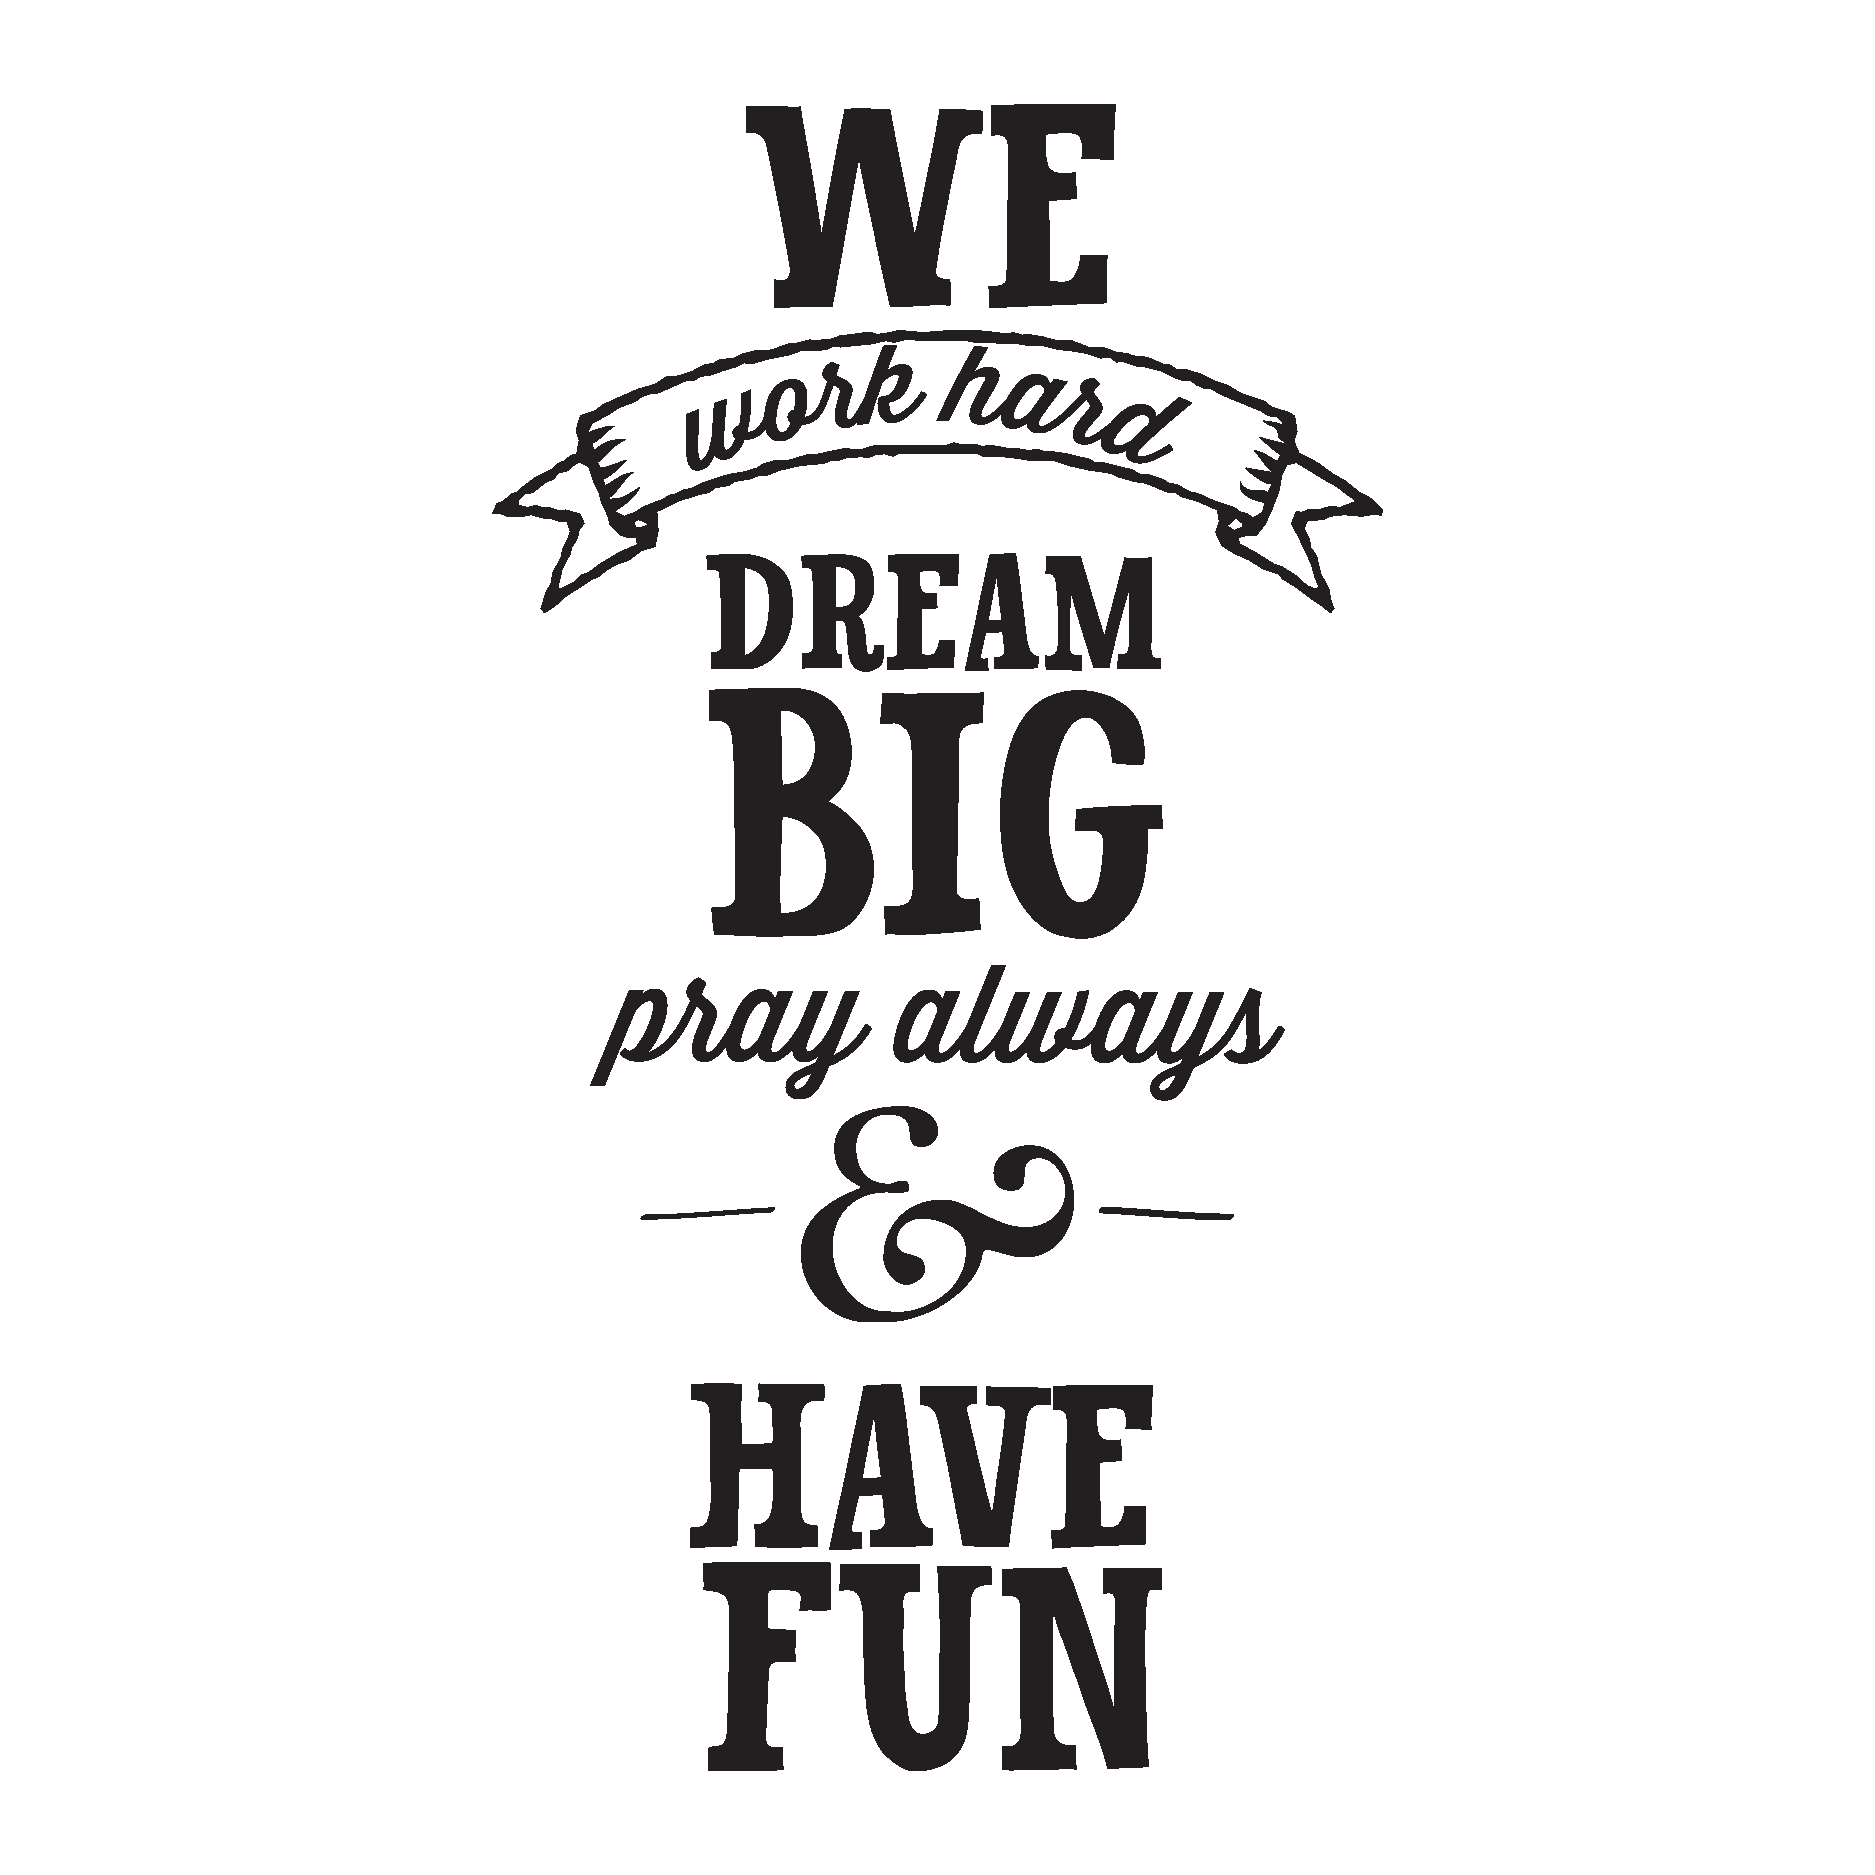 Itworks logo vinyl banner png. We work hard dream